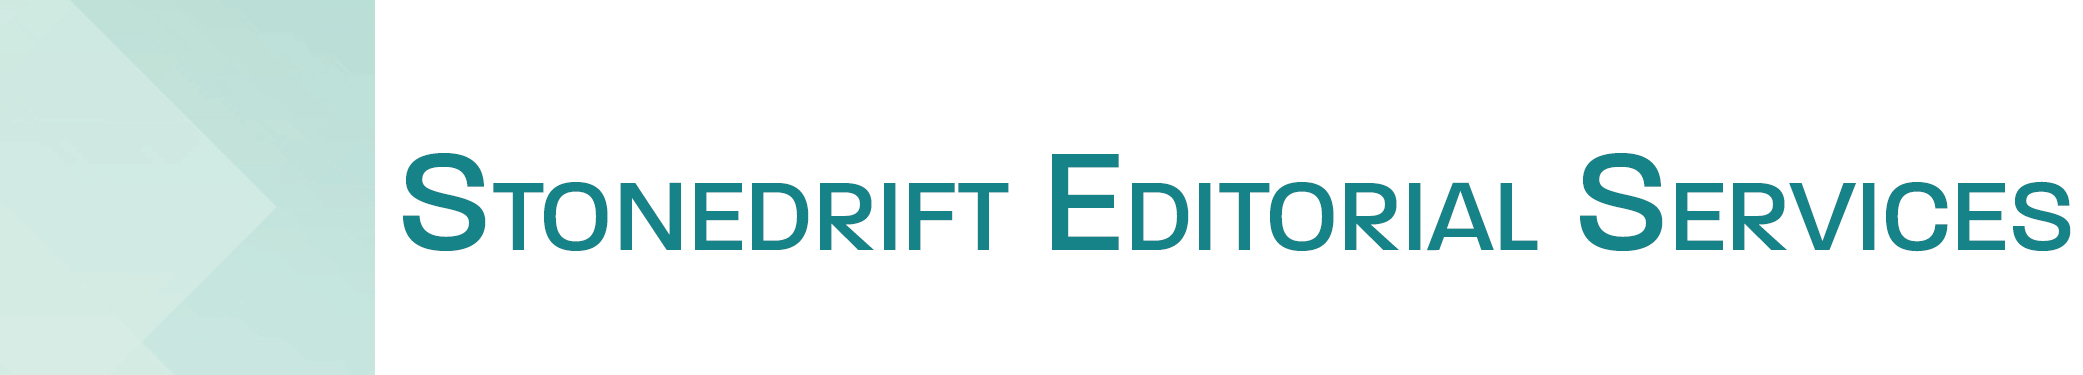 Stonedrift Editorial Services